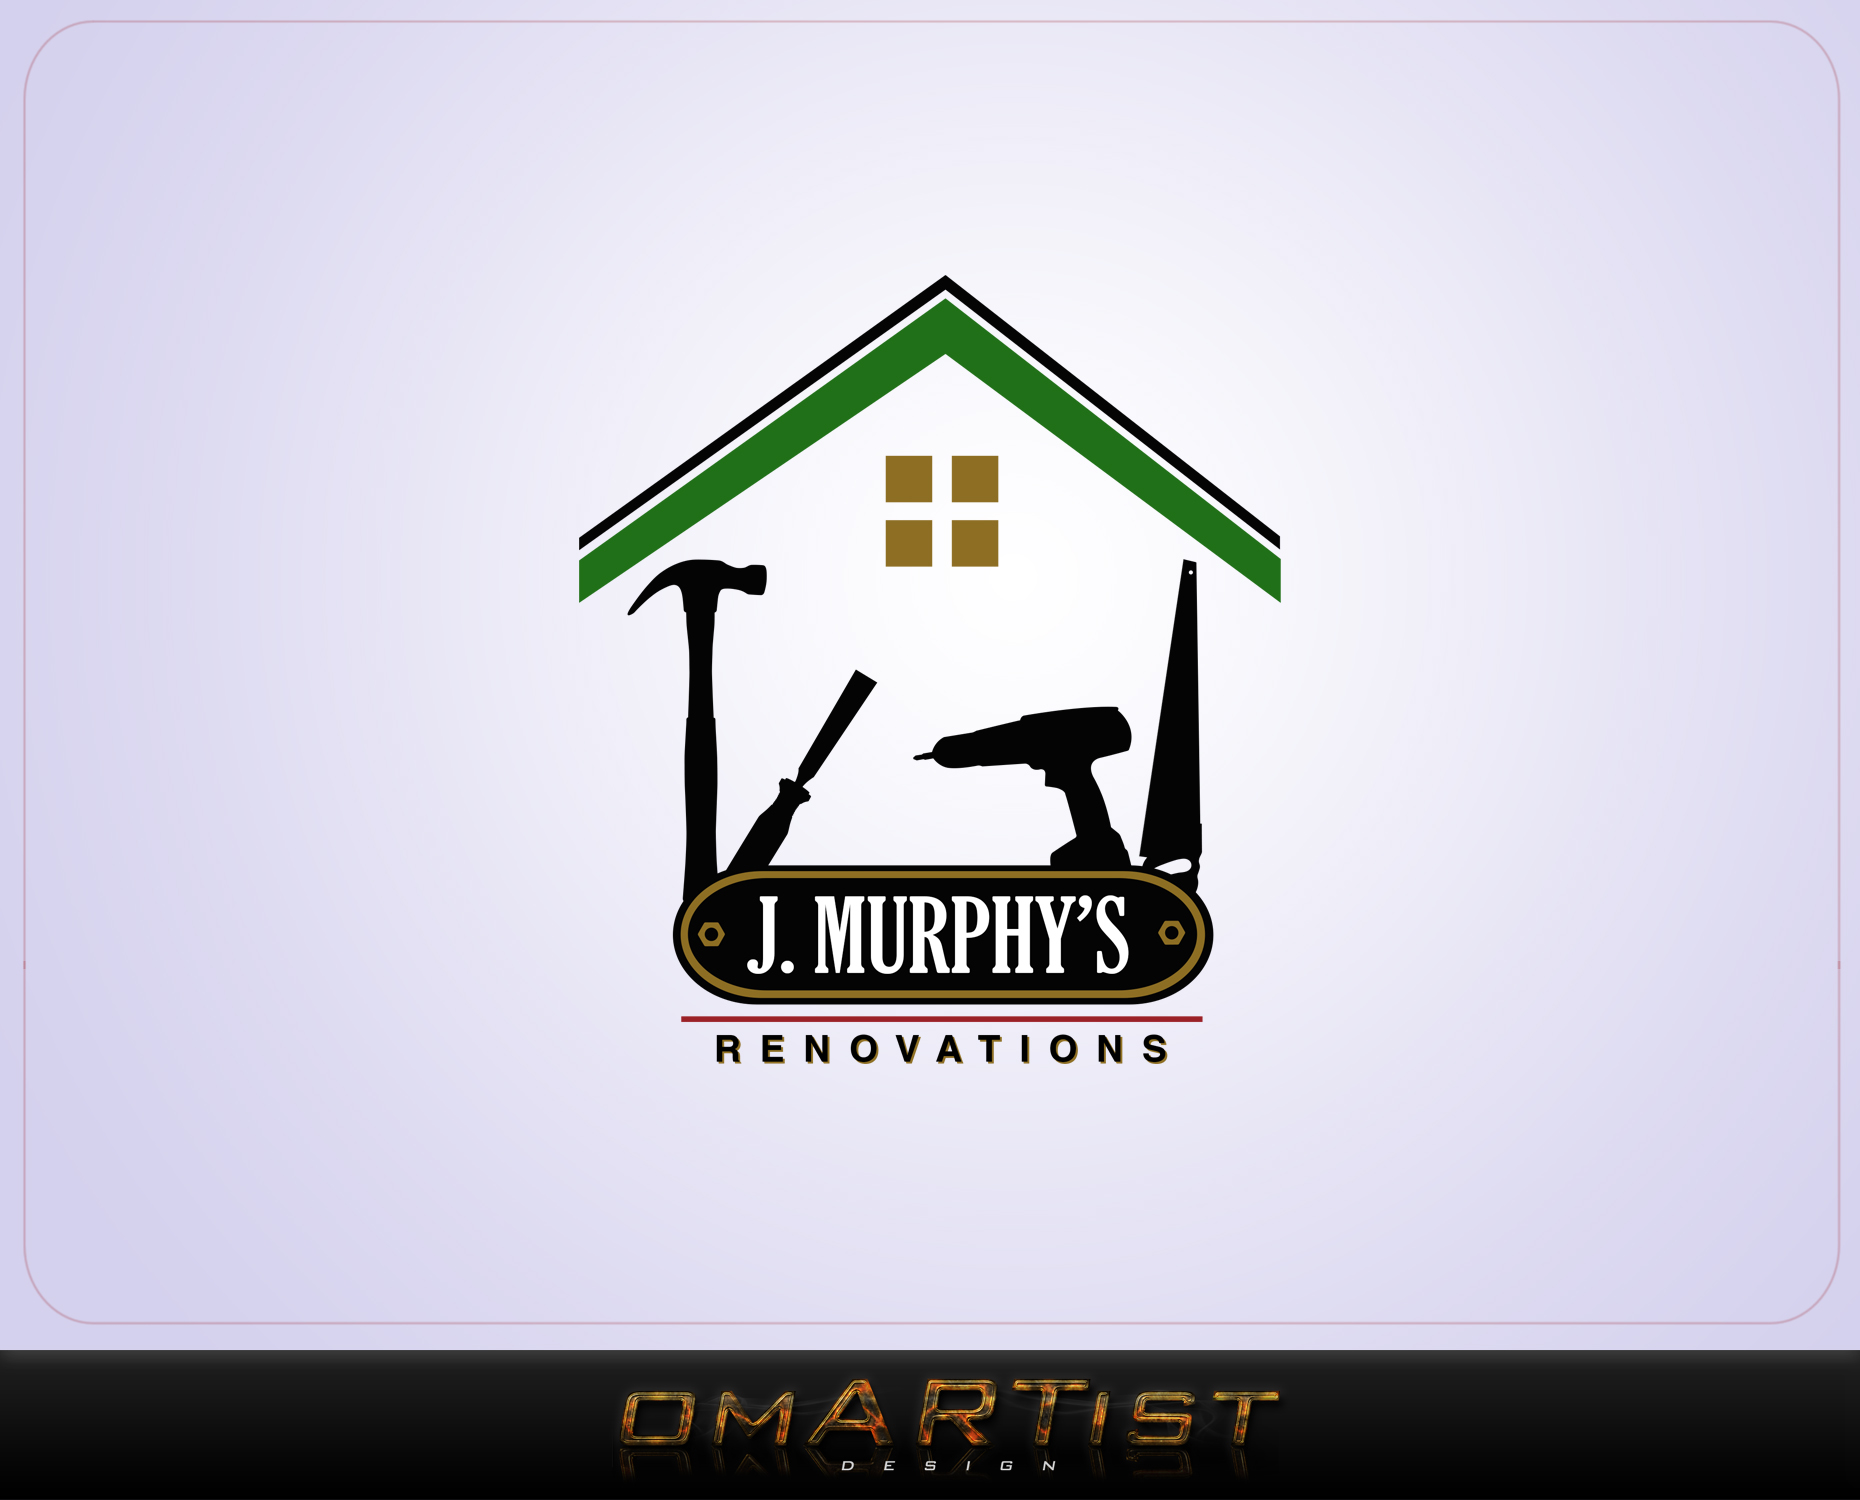 Logo Design by omARTist - Entry No. 101 in the Logo Design Contest J. Murphy's Renovations Logo Design.